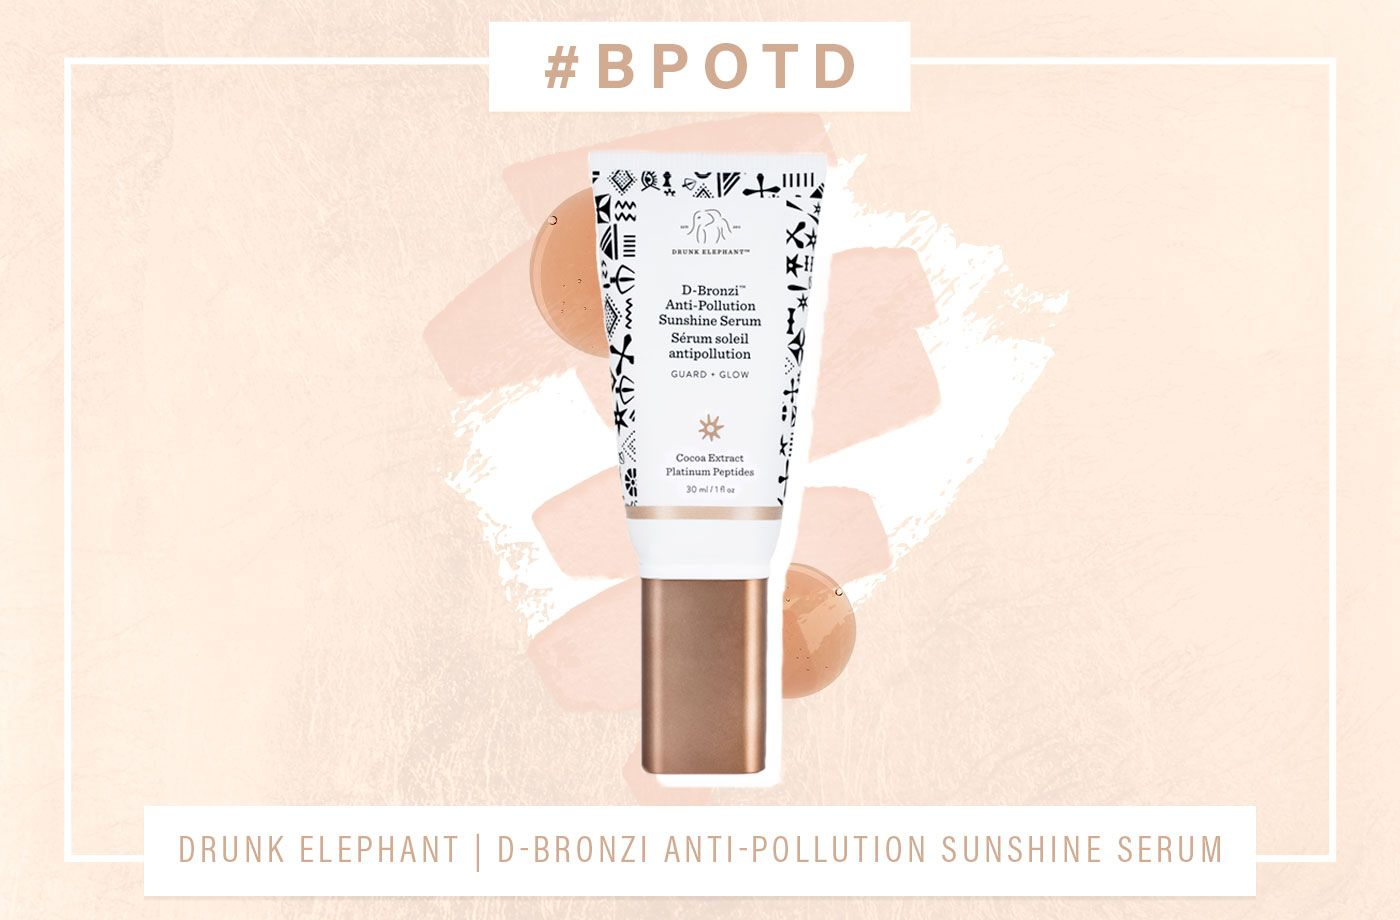 Thumbnail for #BPOTD: Drunk Elephant's new serum is basically vacation in a bottle